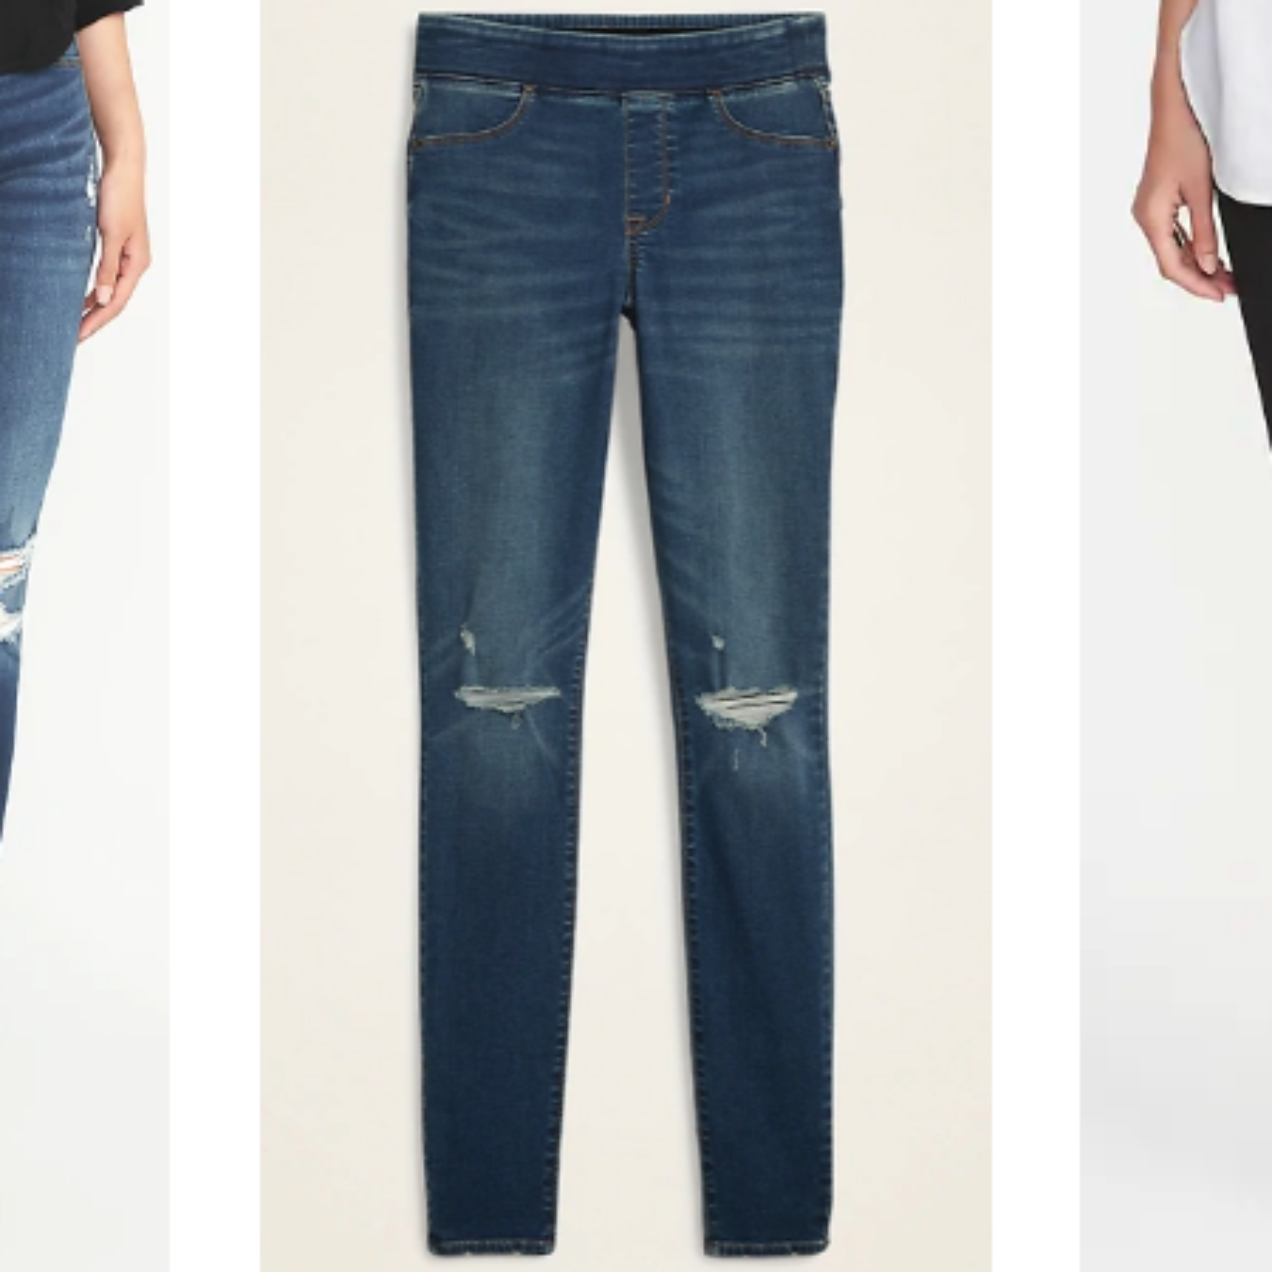 Old Navy Rockstar Jeans Only $15 Today Only (Regular up to $44.99)!